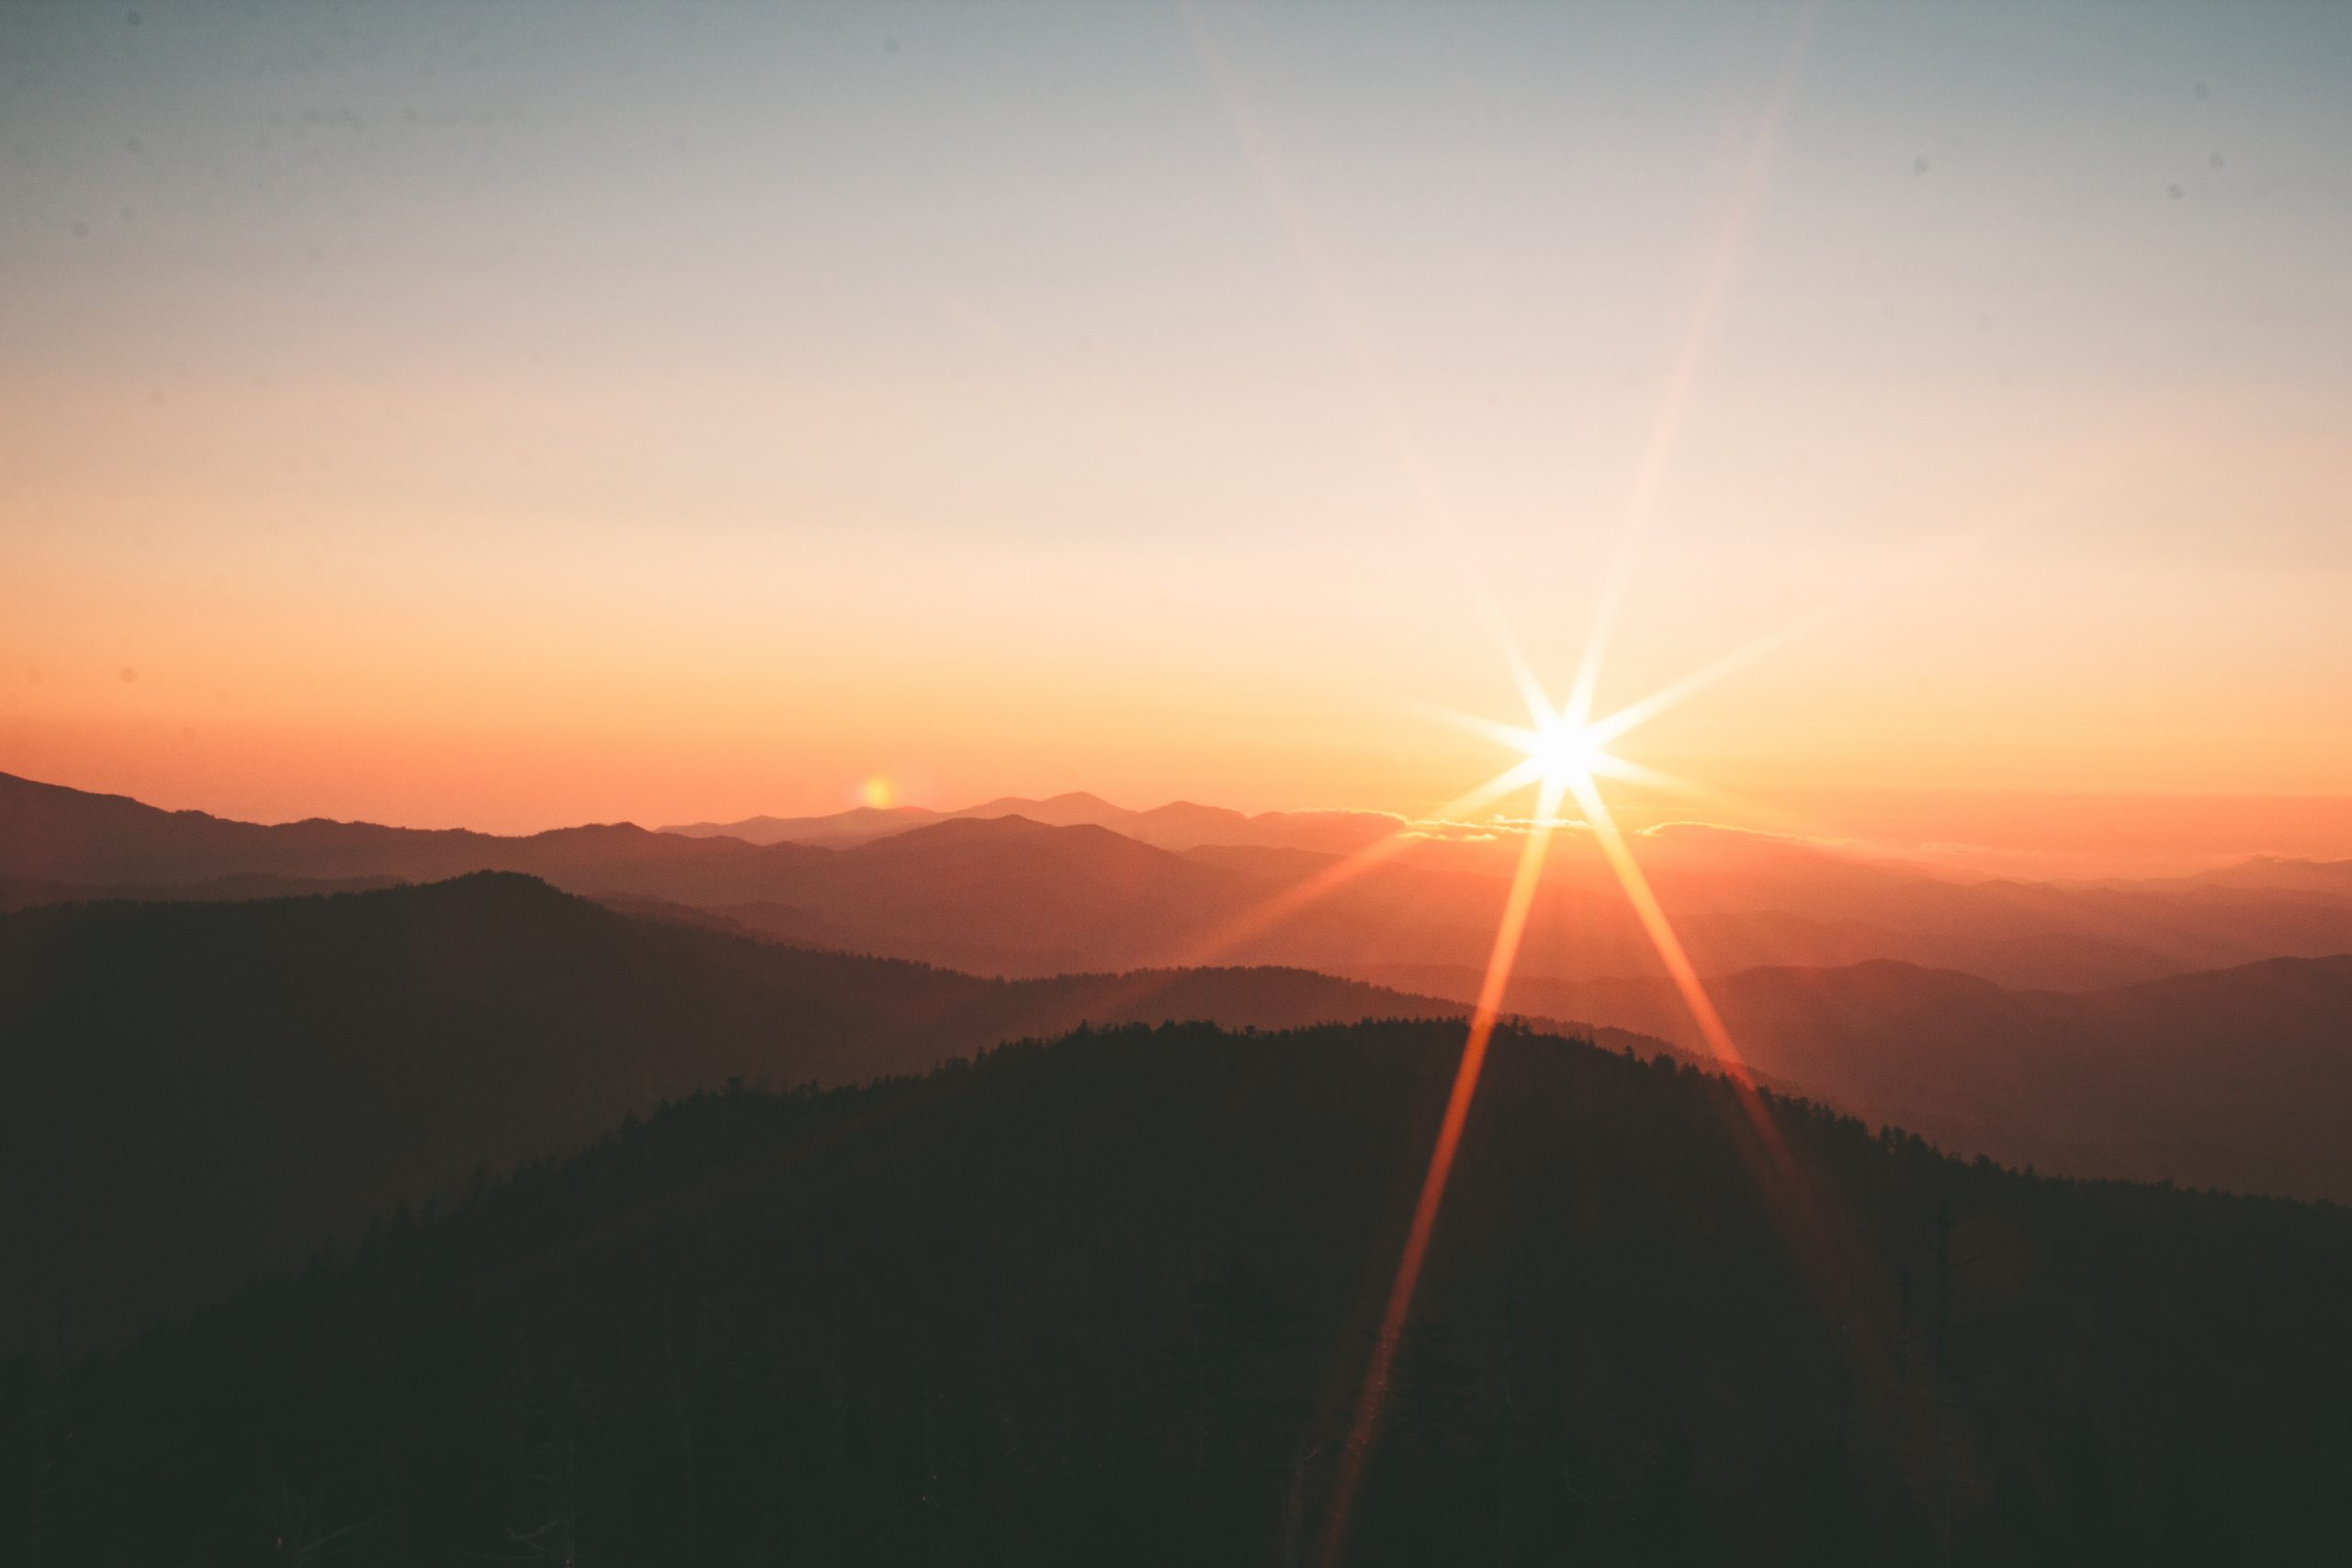 wallpaper Silhouette of mountains during sunset